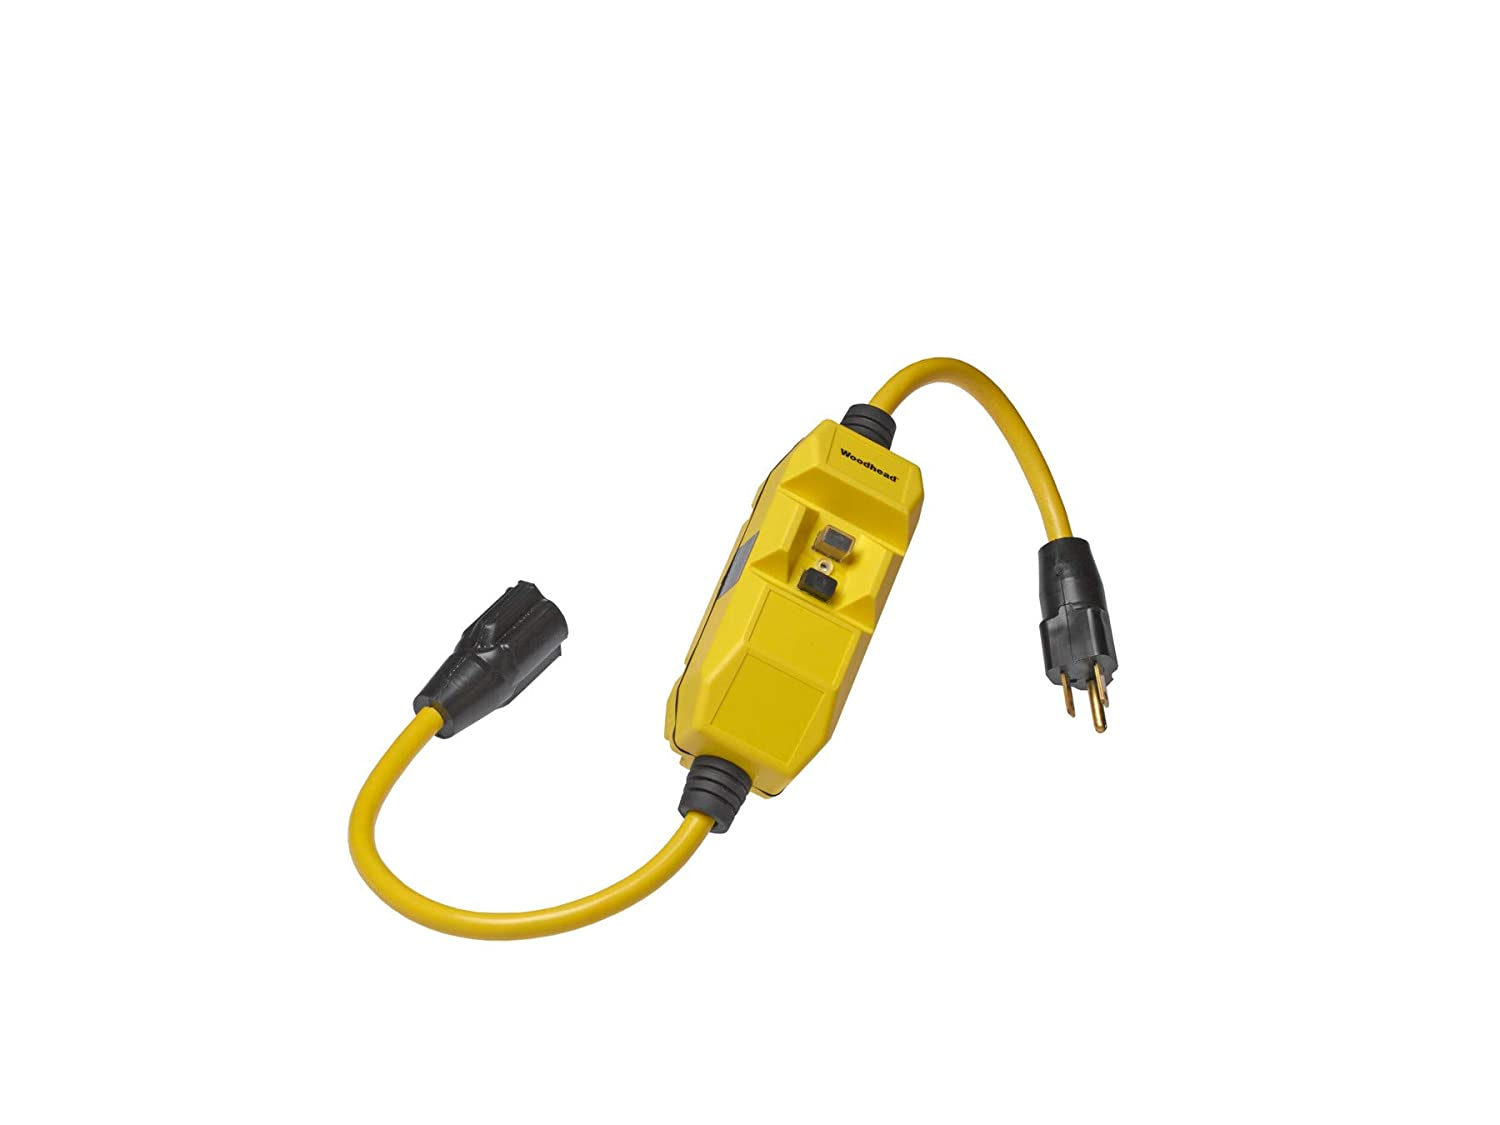 15A Current Commercial Duty 120V Voltage 14//3 SJTW Cord Type 2ft Cord Length Molex Woodhead 15050-1 Safeway GFCI Molded Plug and Connector NEMA 5-15 Configuration 1 Receptacles